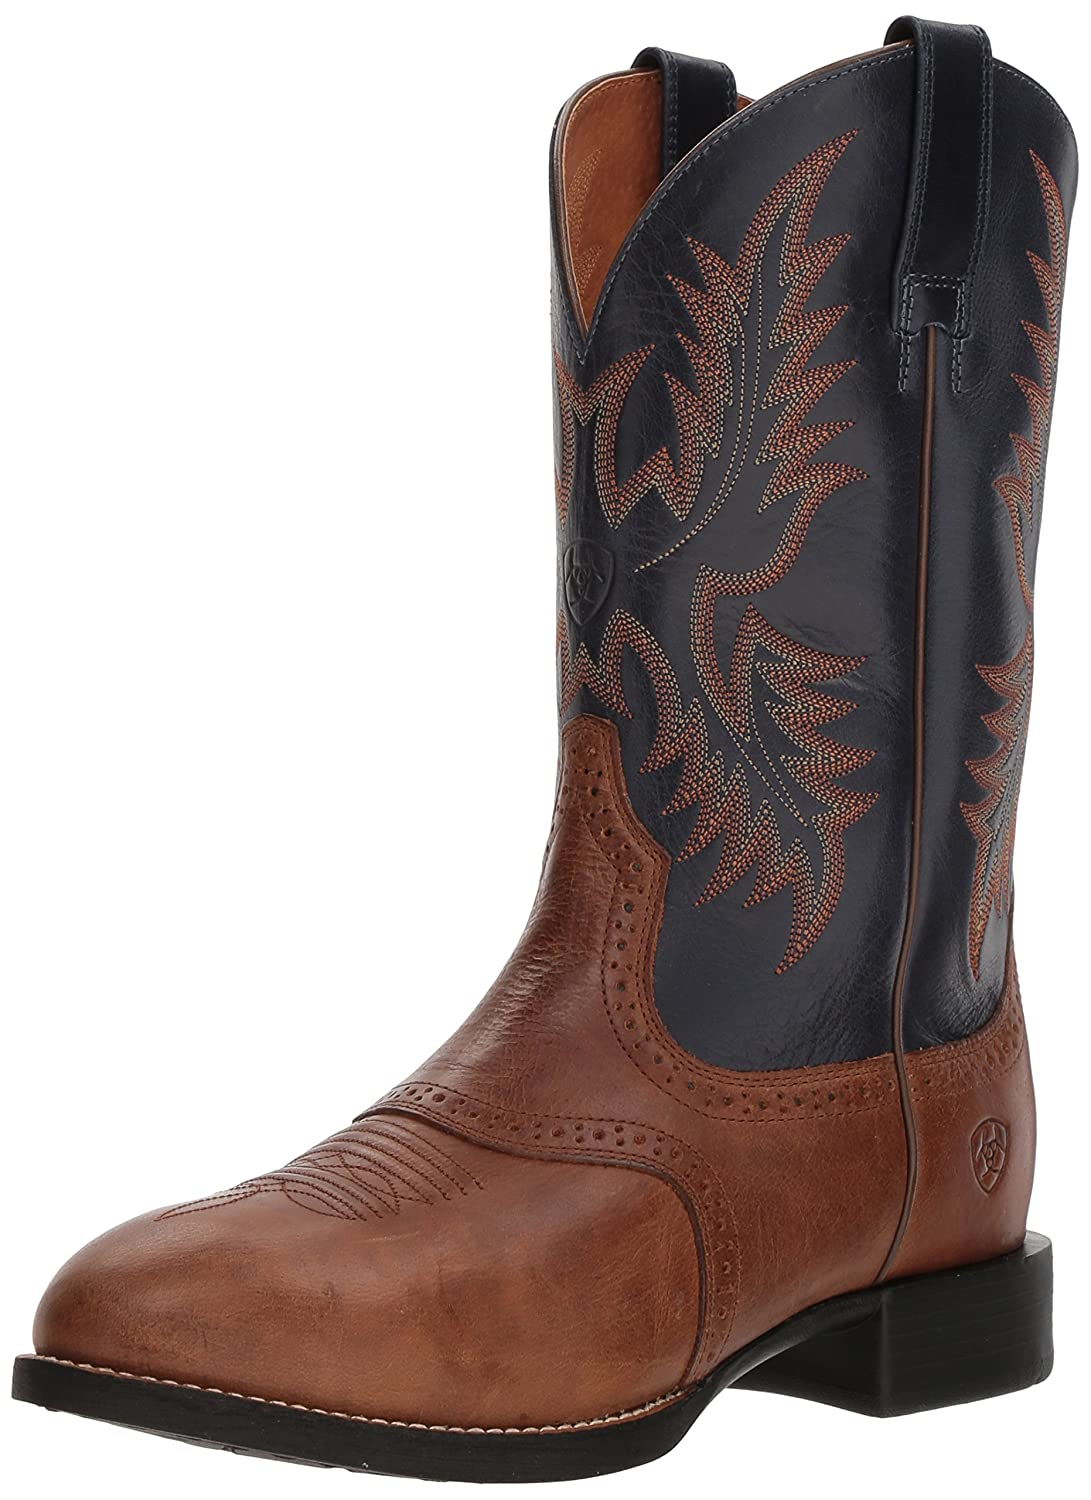 Ariat Men's Heritage Stockman Western Boot B00NVIVI90 9 E US|Sandstorm/Arizona Sky